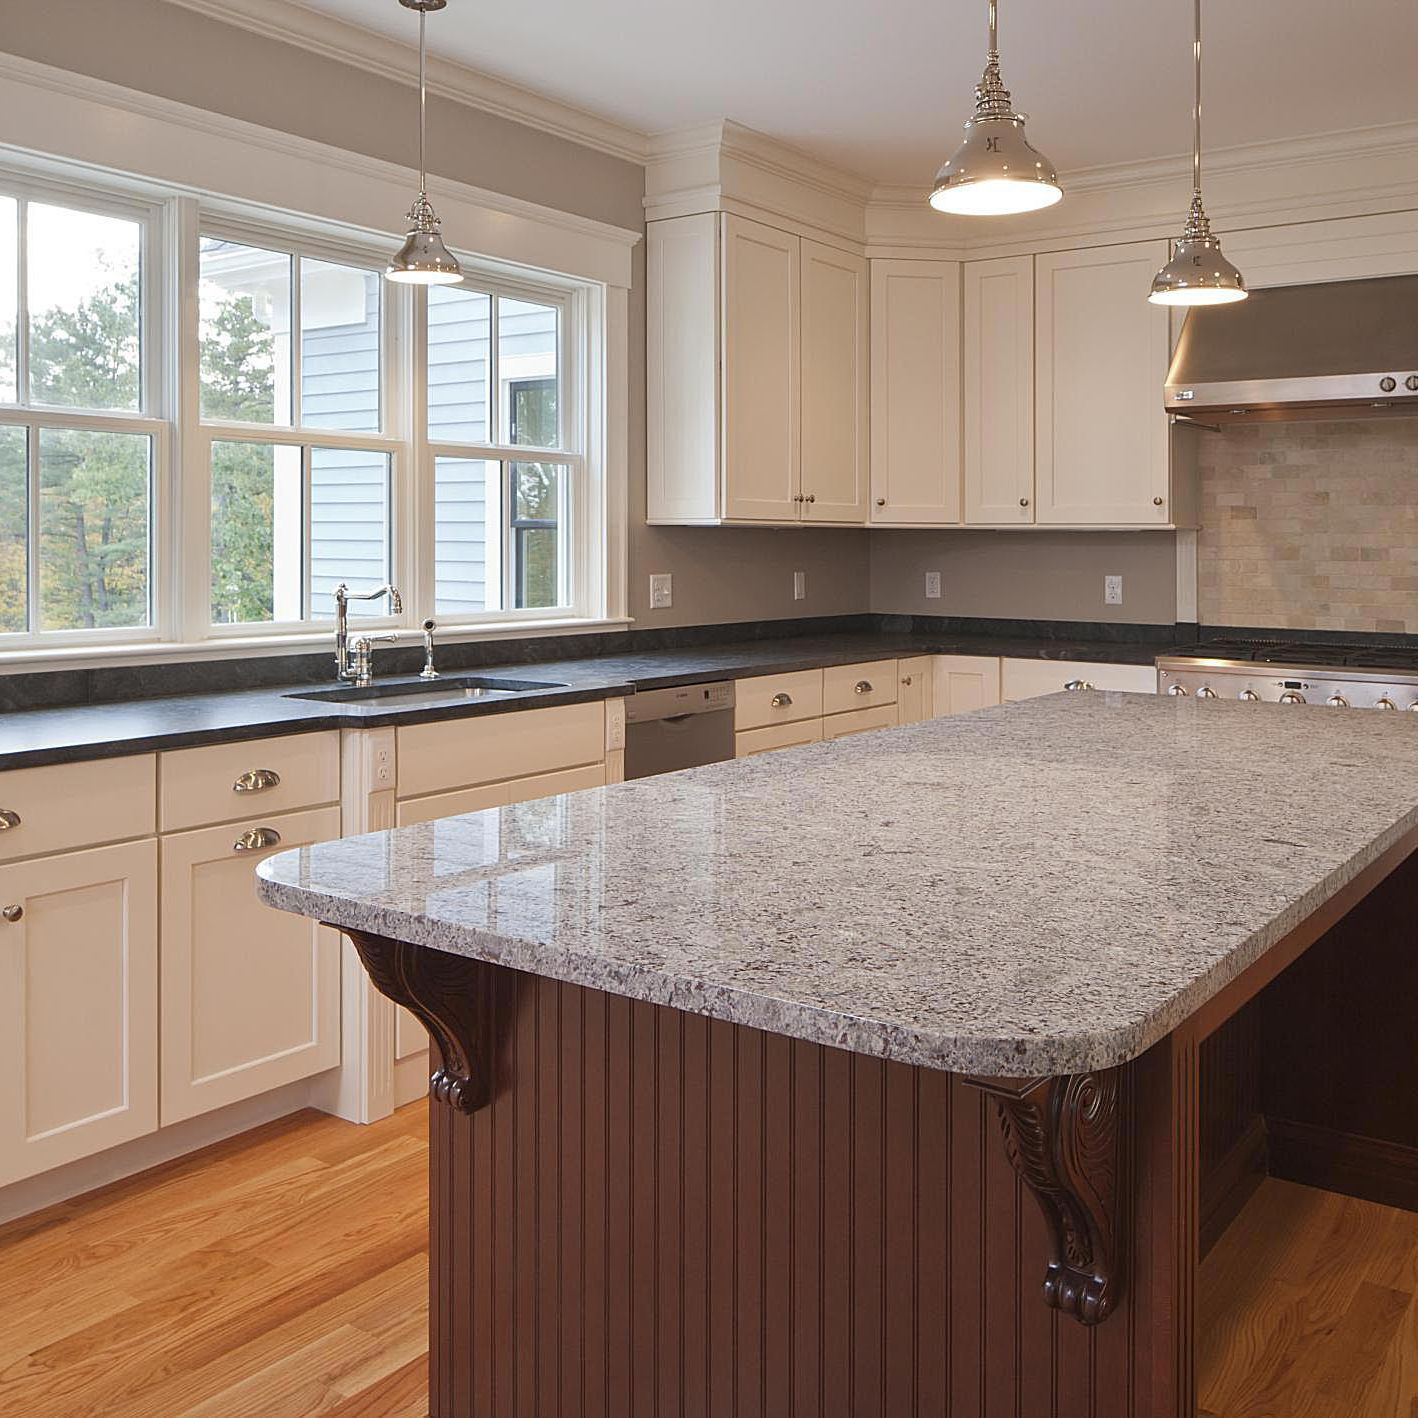 most popular granite countertops colors 2021 in 2020 on business office color schemes 2021 id=32240